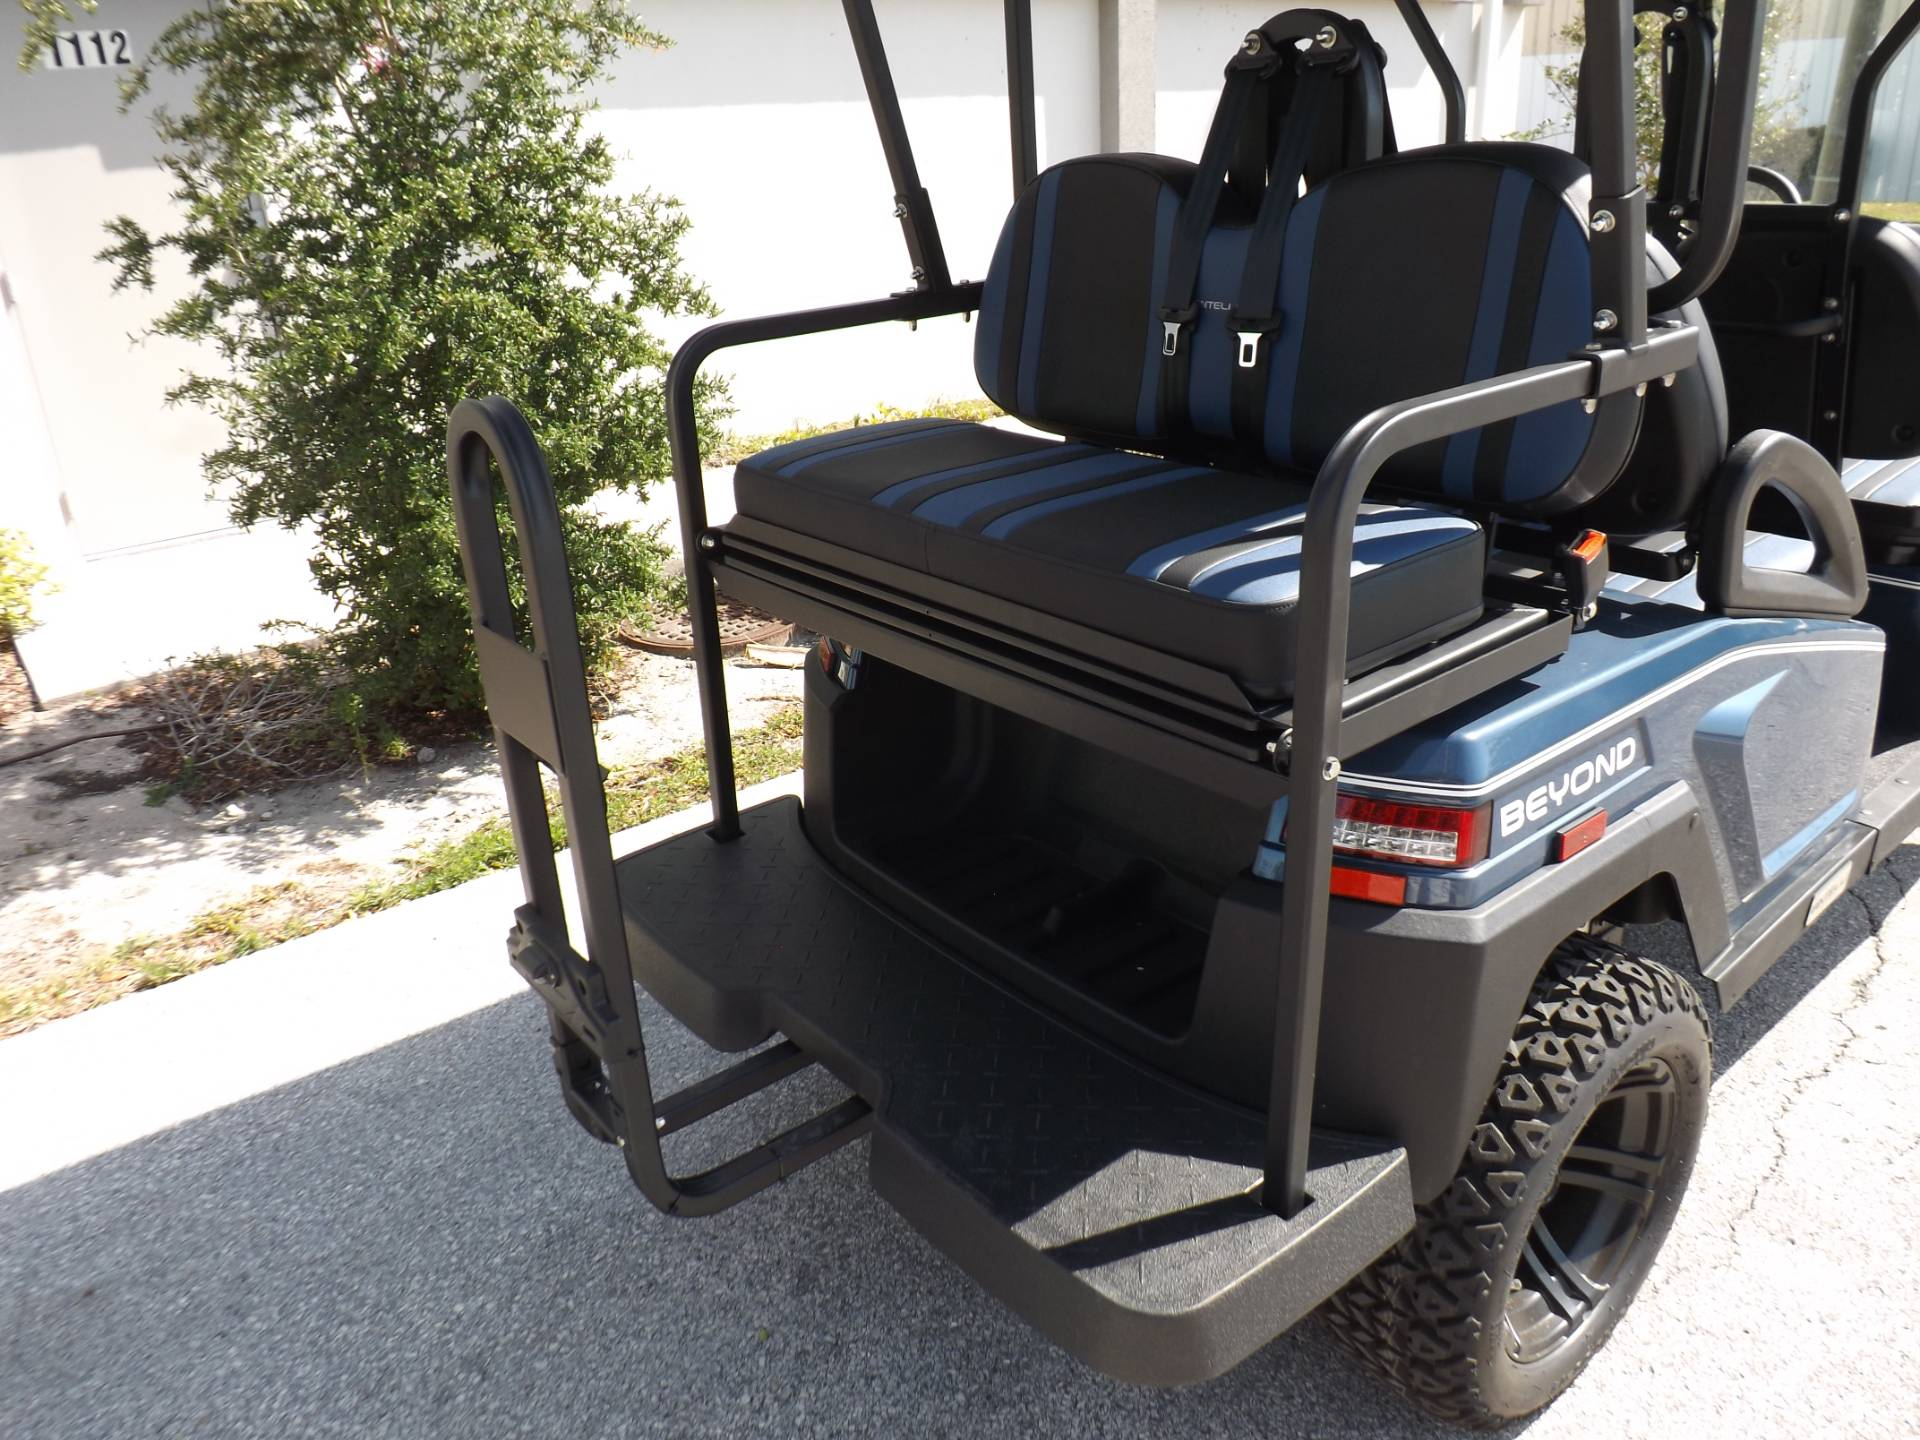 2021 Bintelli BEYOND 6P LIFTED STREET LEGAL GOLF CART in Lakeland, Florida - Photo 16